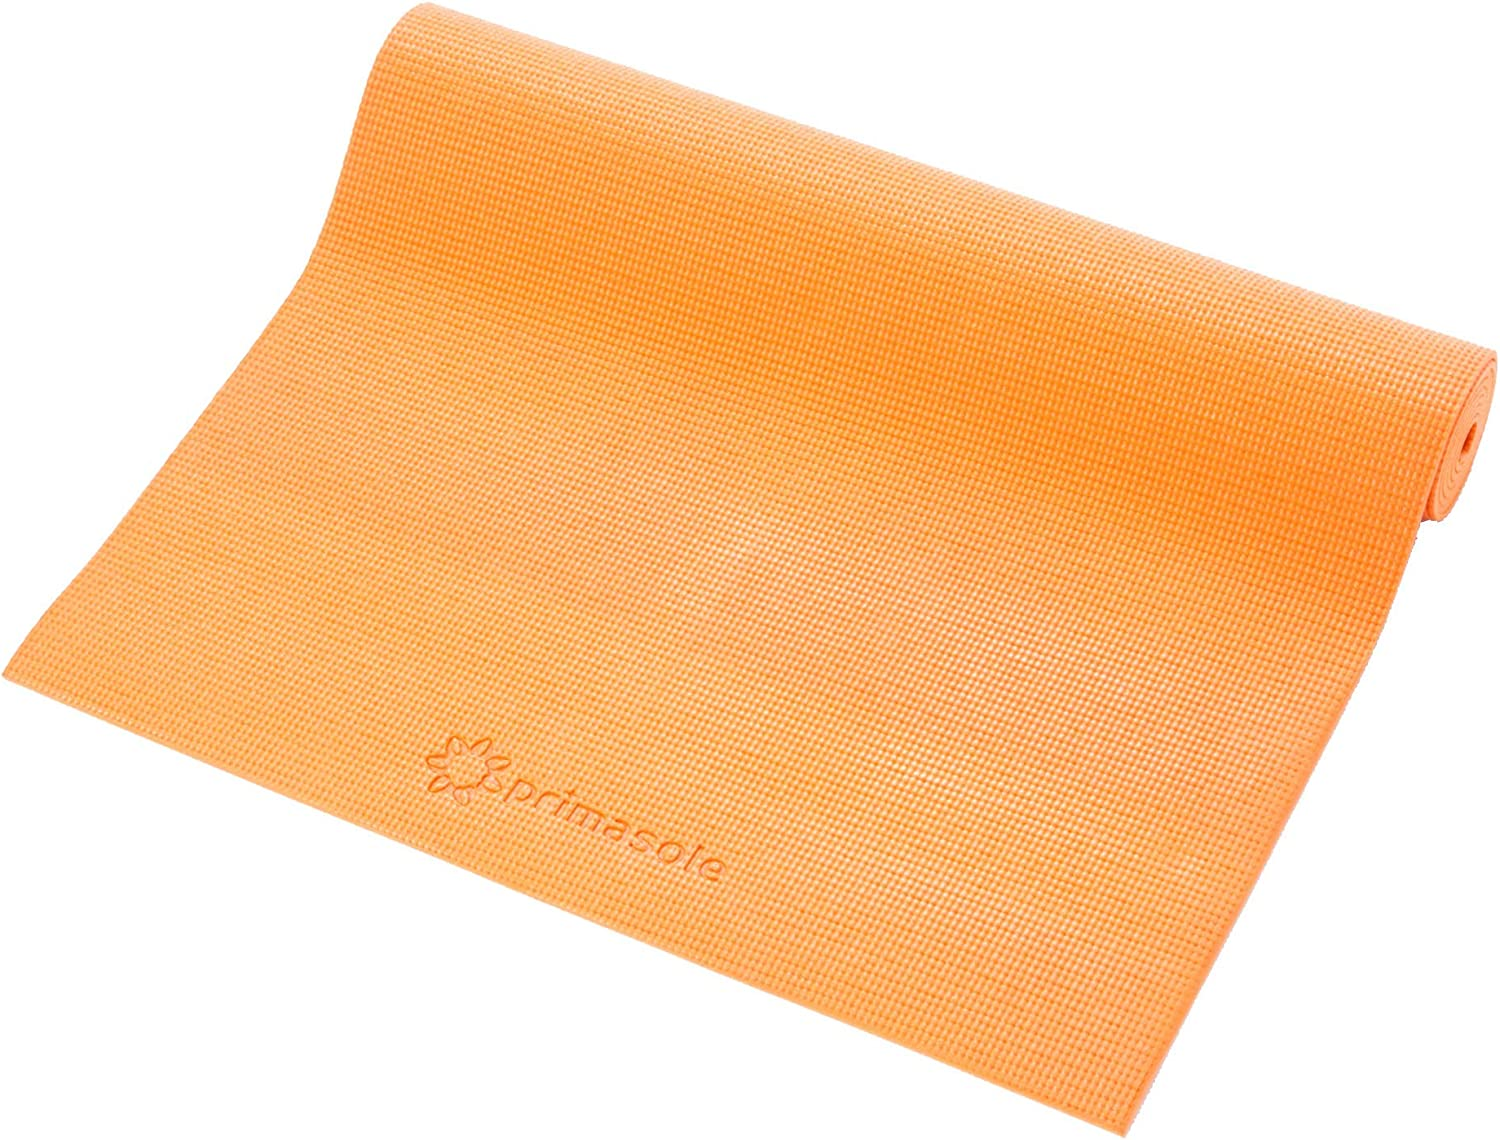 """Primasole Yoga Mat with Carrying Strap 1/4"""" Thick Exercise Mat for Yoga, Pilates, Fitness and Floor Workout at Home & Gym. (Coral Red Color) PSS91NH004A"""